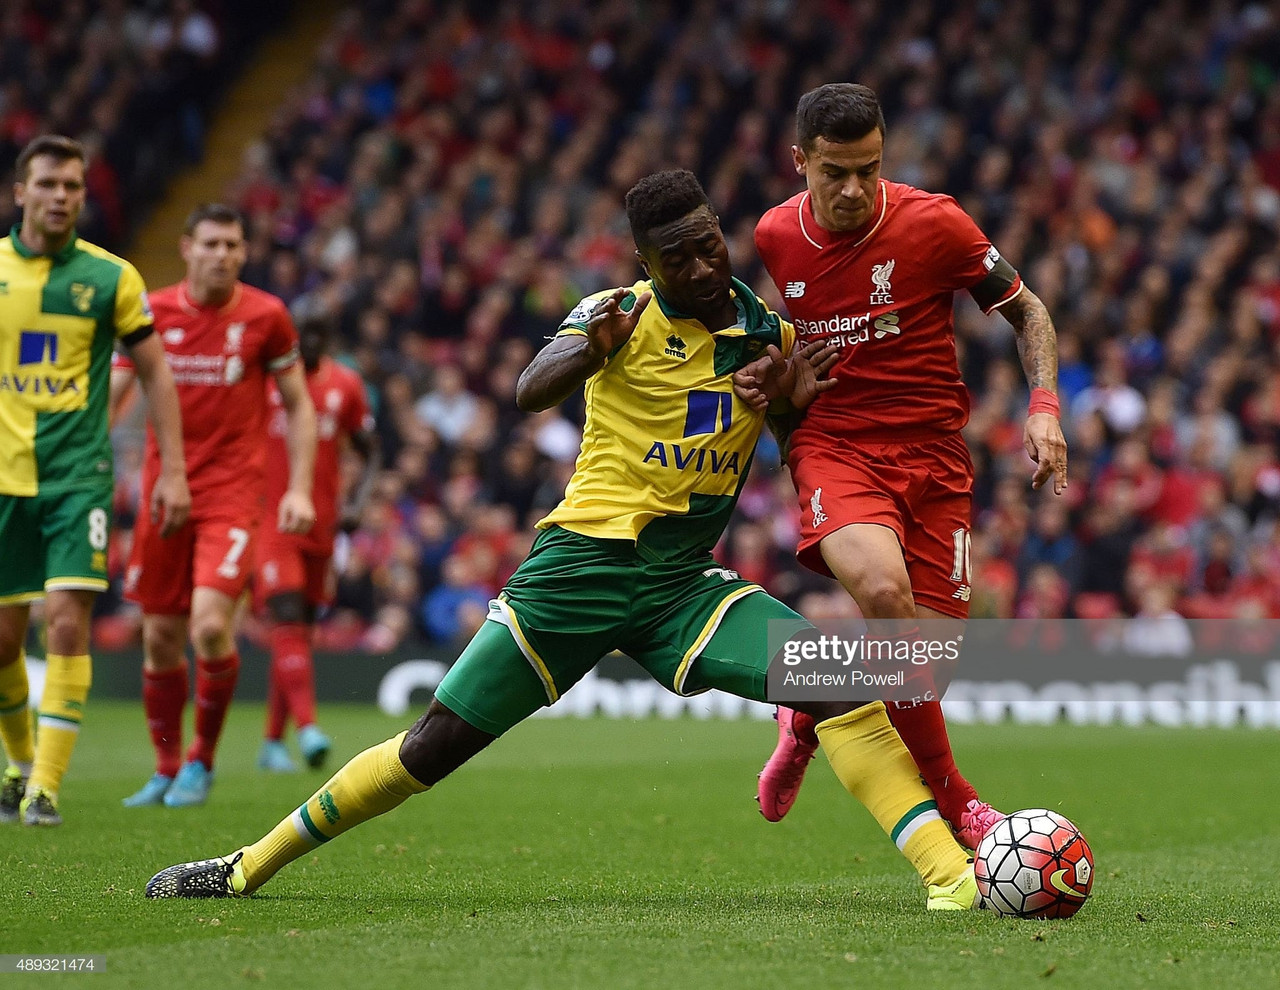 Alex Tettey: More influential than Jordan Henderson?